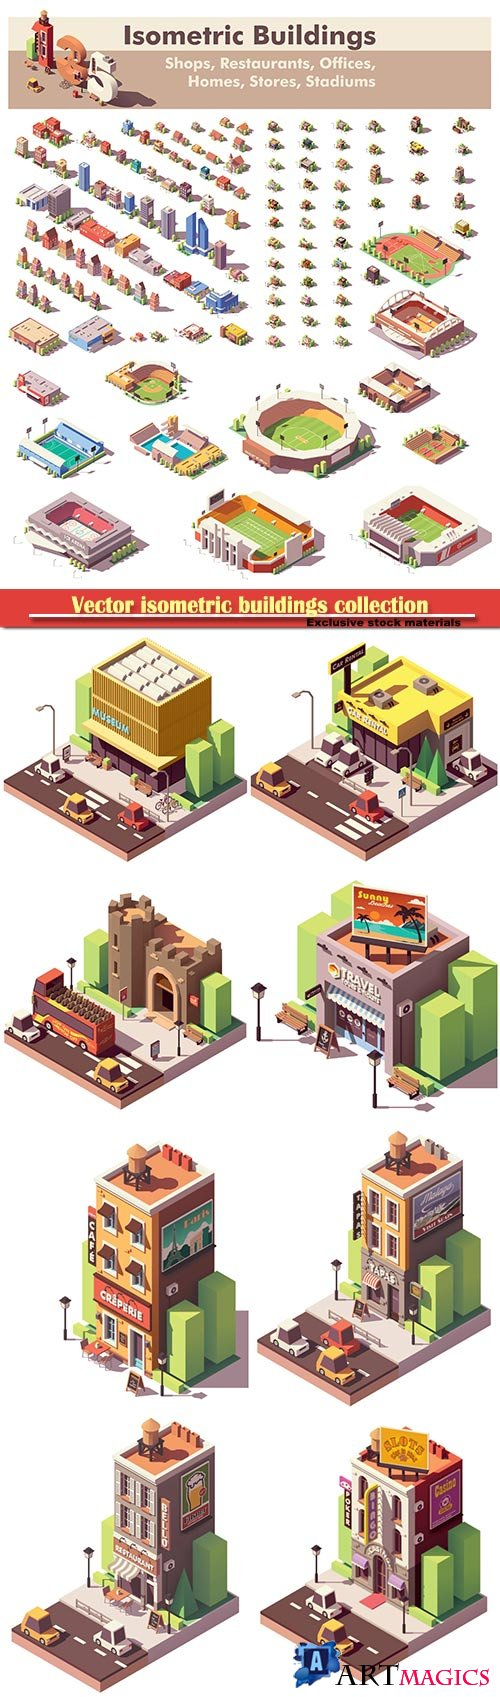 Vector isometric buildings collection, includes homes, offices, stadiums, shops, supermarkets, stores and restaurants